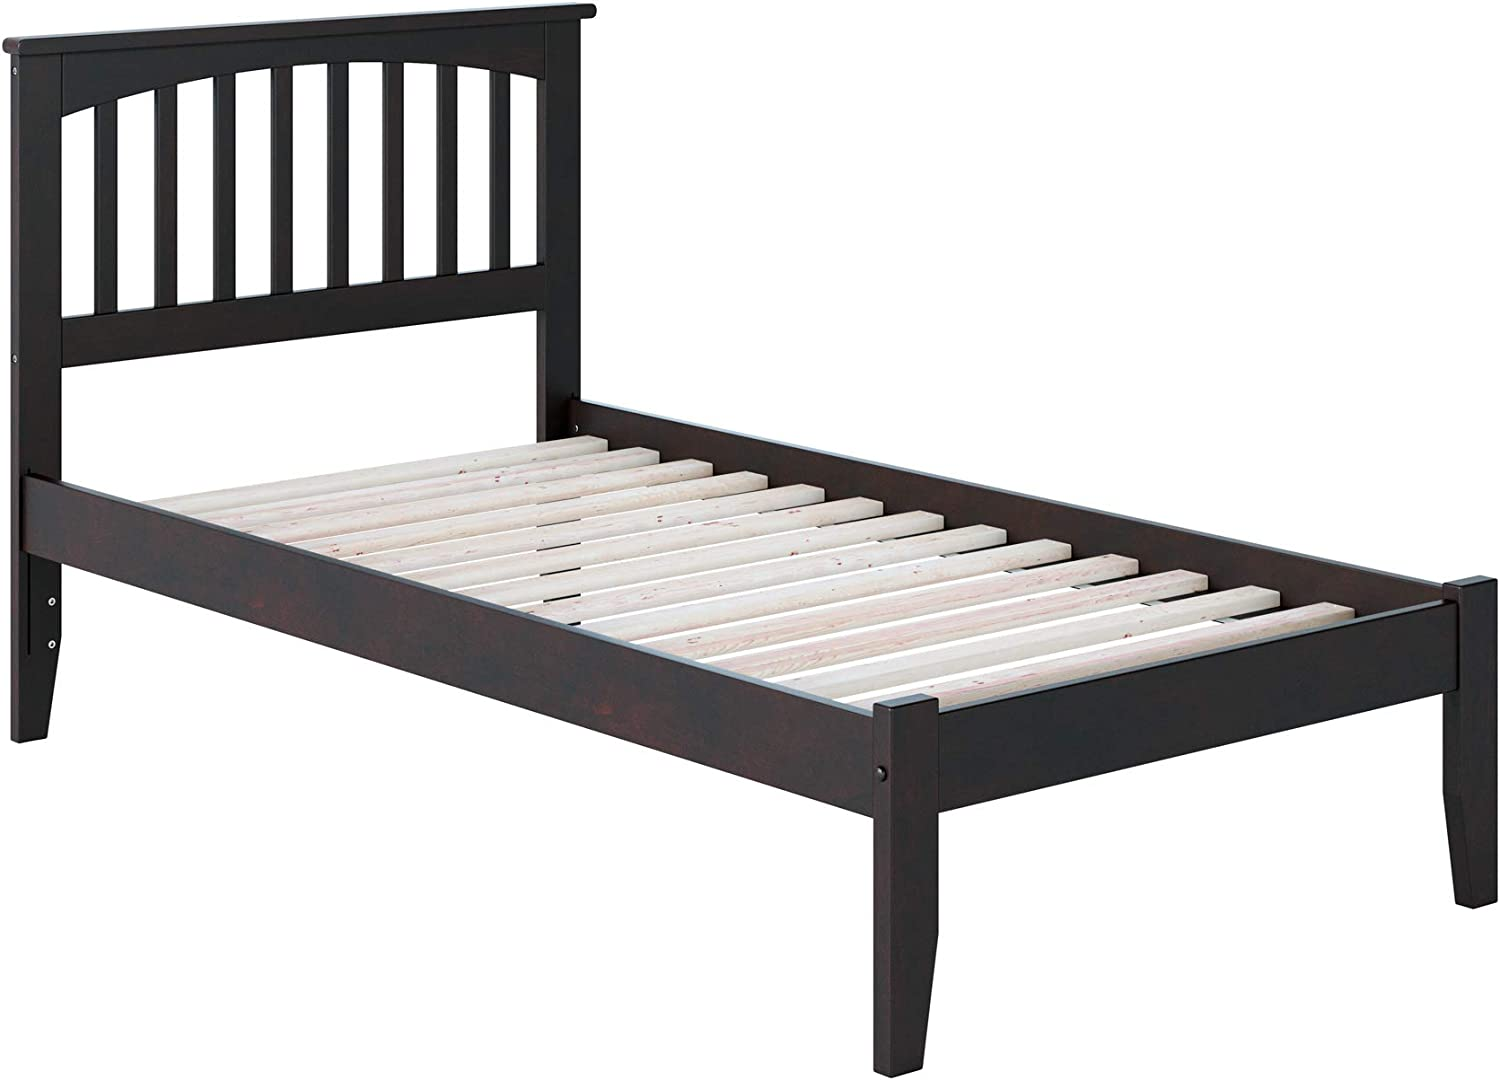 Atlantic Furniture Mission Platform Bed with Open Foot Board, Twin XL, Espresso